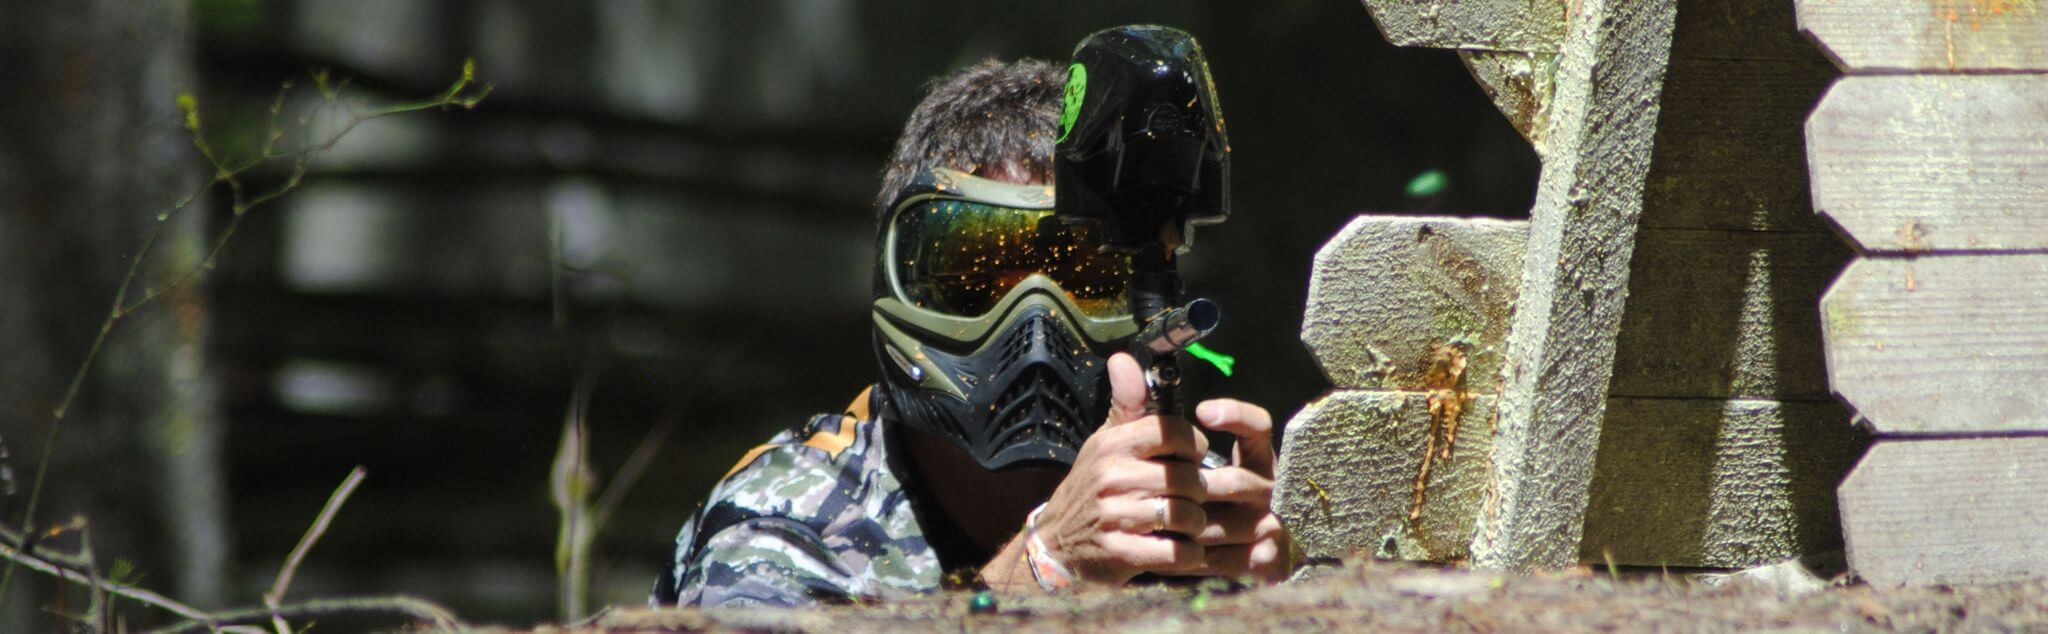 Paintball in Menorca